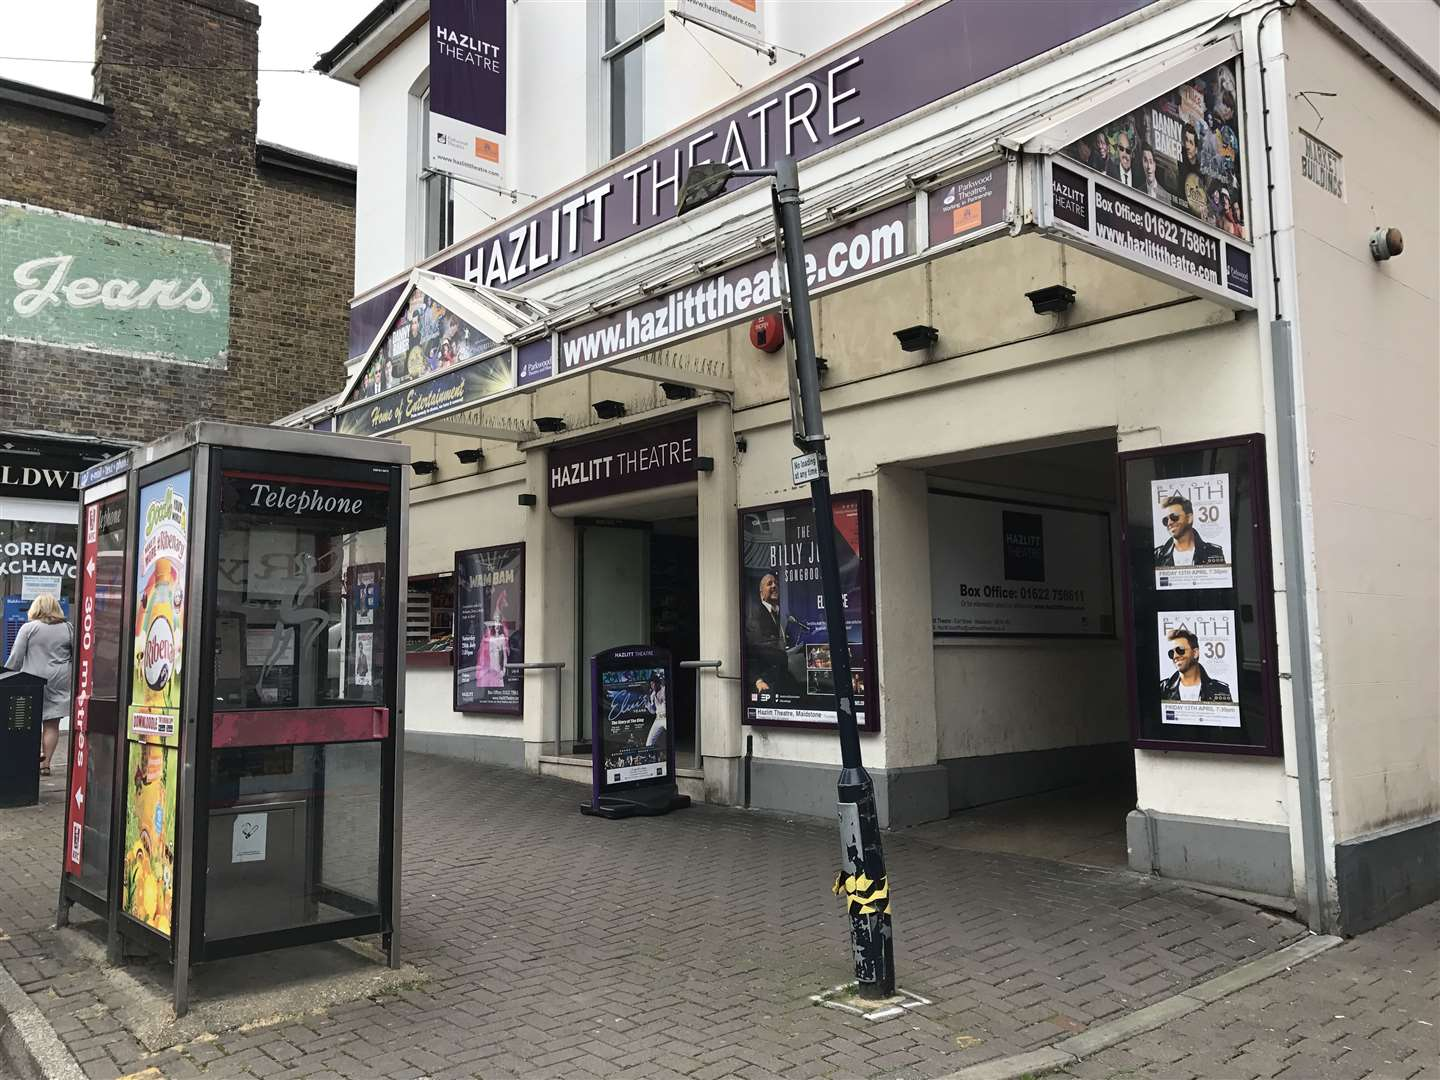 Auditions have previously been held at the Hazlitt Theatre